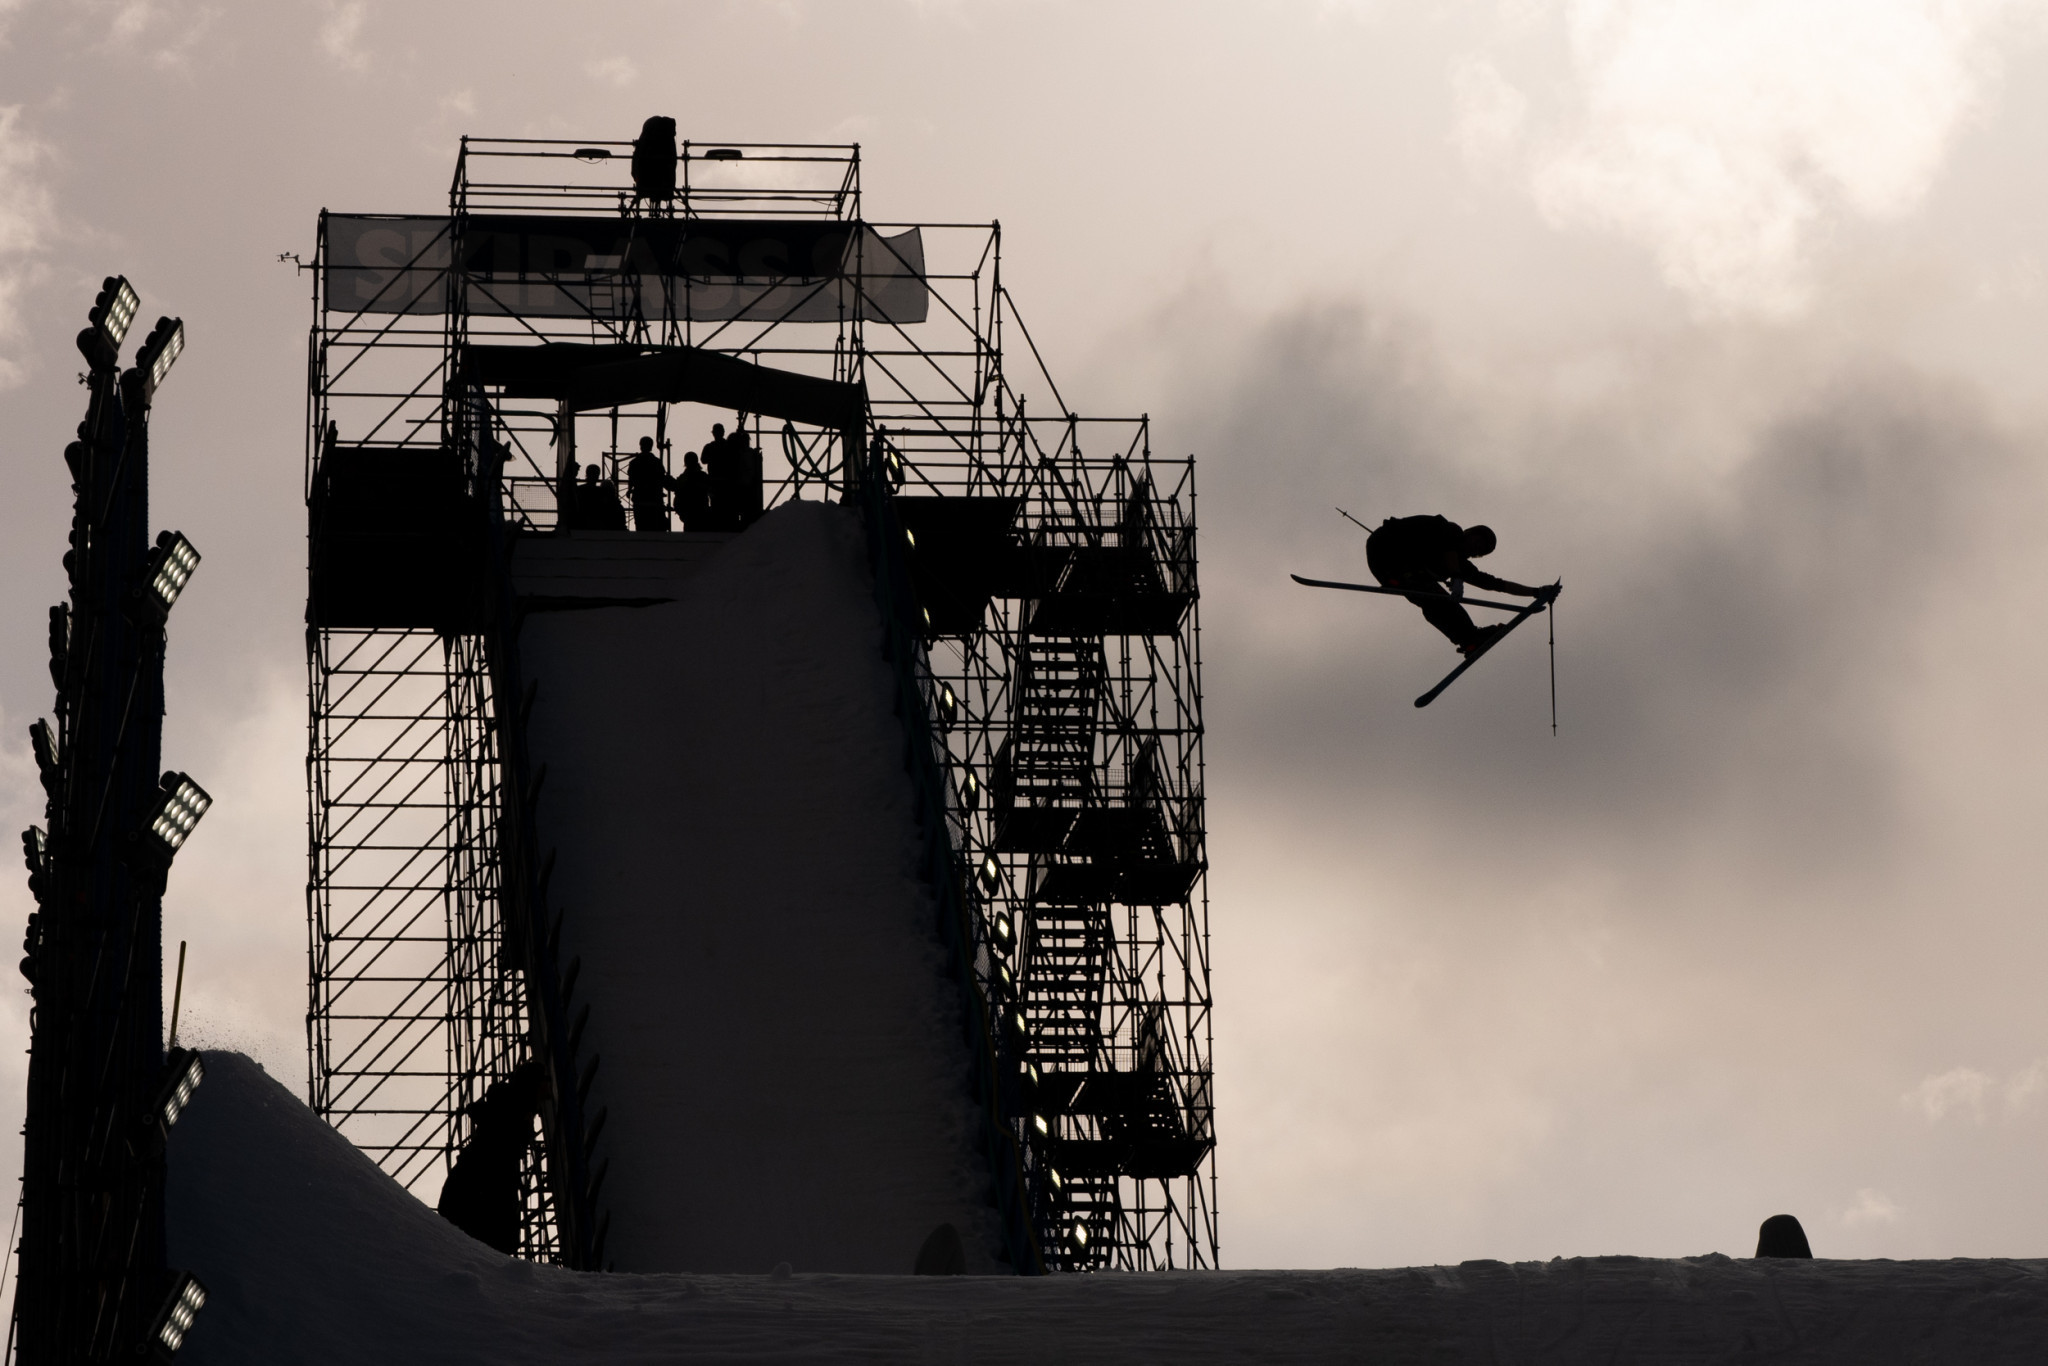 Modena is set to host the FIS Big Air World Cup ©US Ski and Snowboard